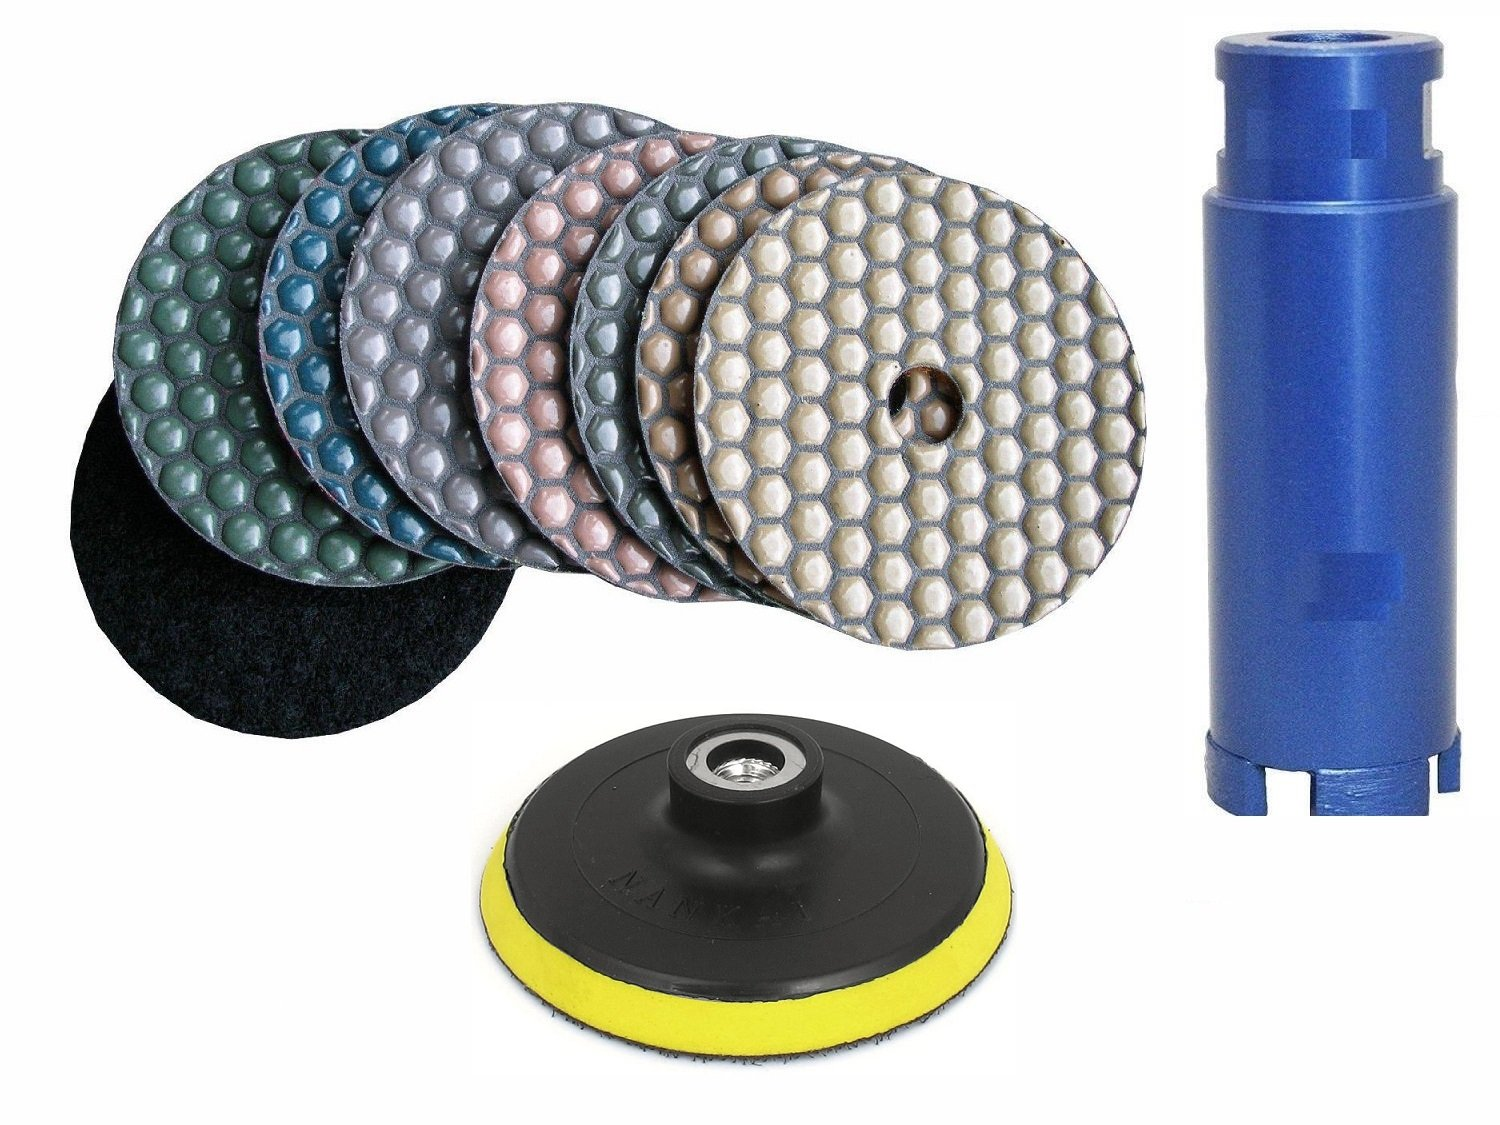 "Diamond Polishing Pad 4"" Dry 9+1 Pieces 1 1/2"" 38mm Diamond Core Drill Bit Hole Saw Granite Concrete Marble Travertine Terrazzo sink hole cutout"